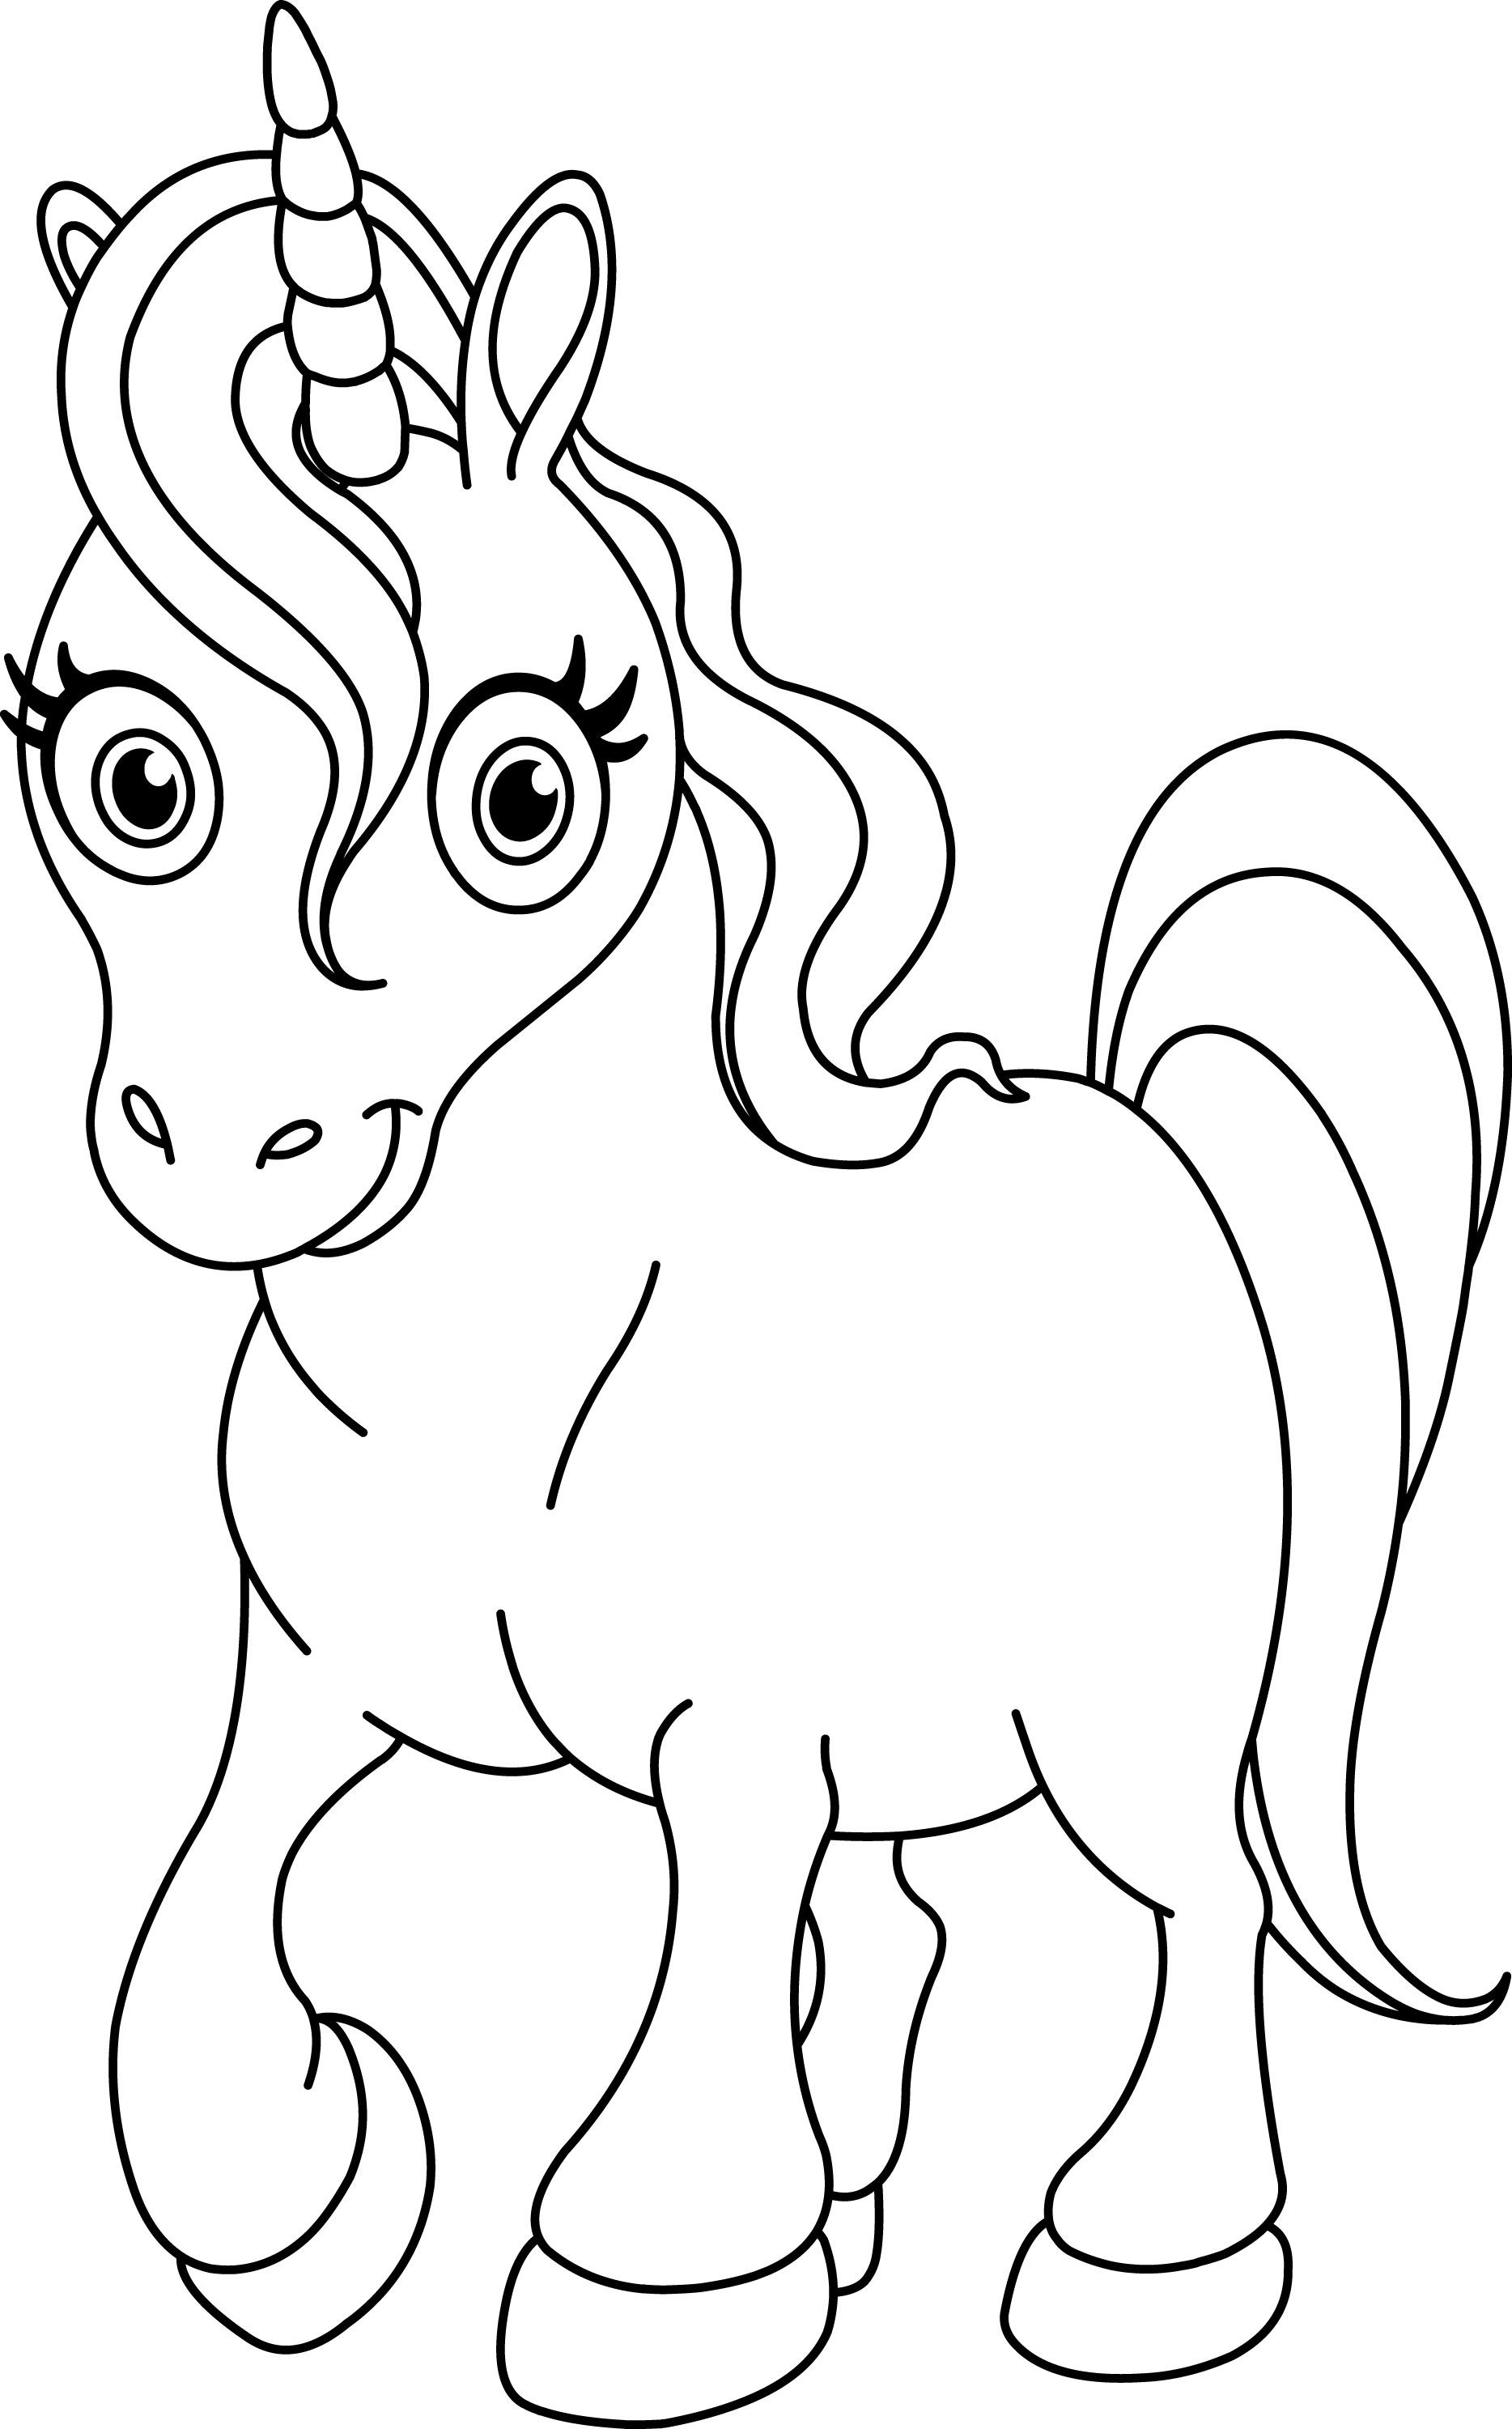 Pay Attention For This Explanation To Do The Unicorn Coloring Pages